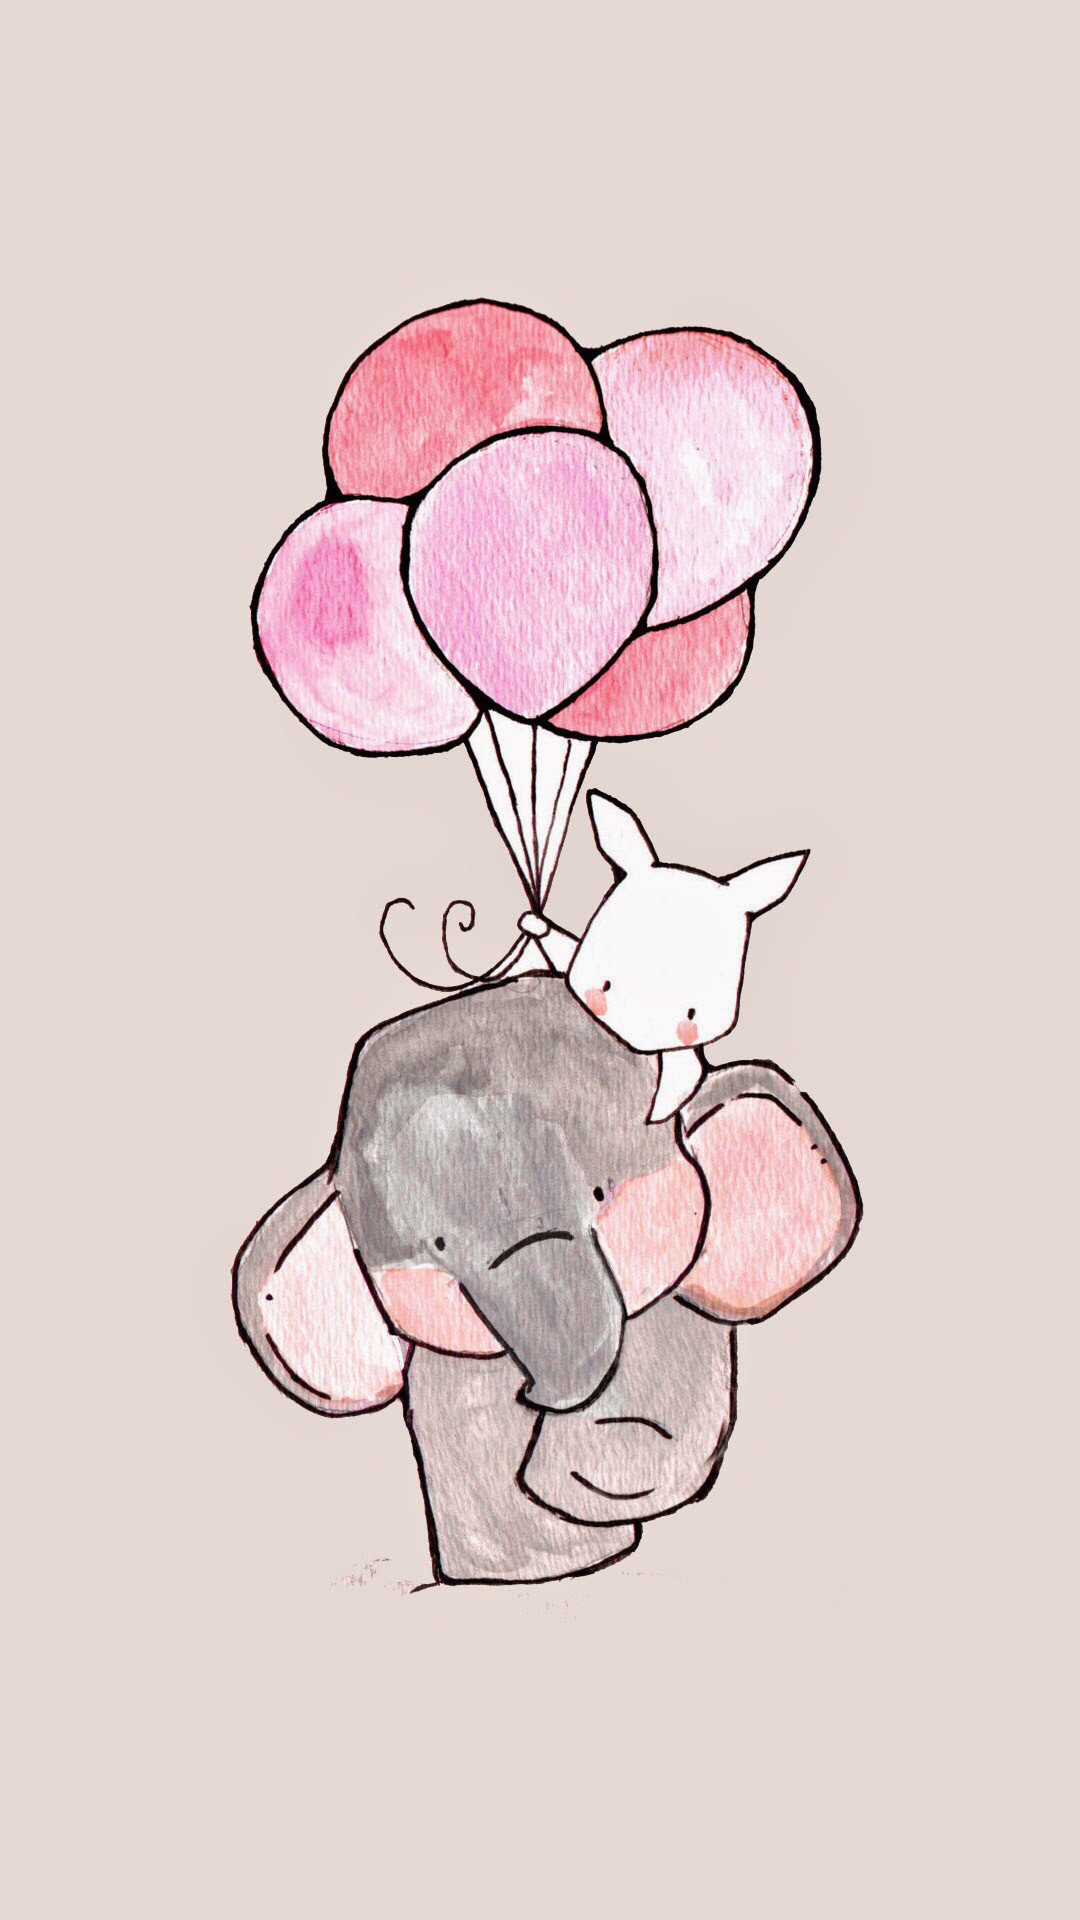 1080x1920 iphone wallpaper girly elephant and rabbit.